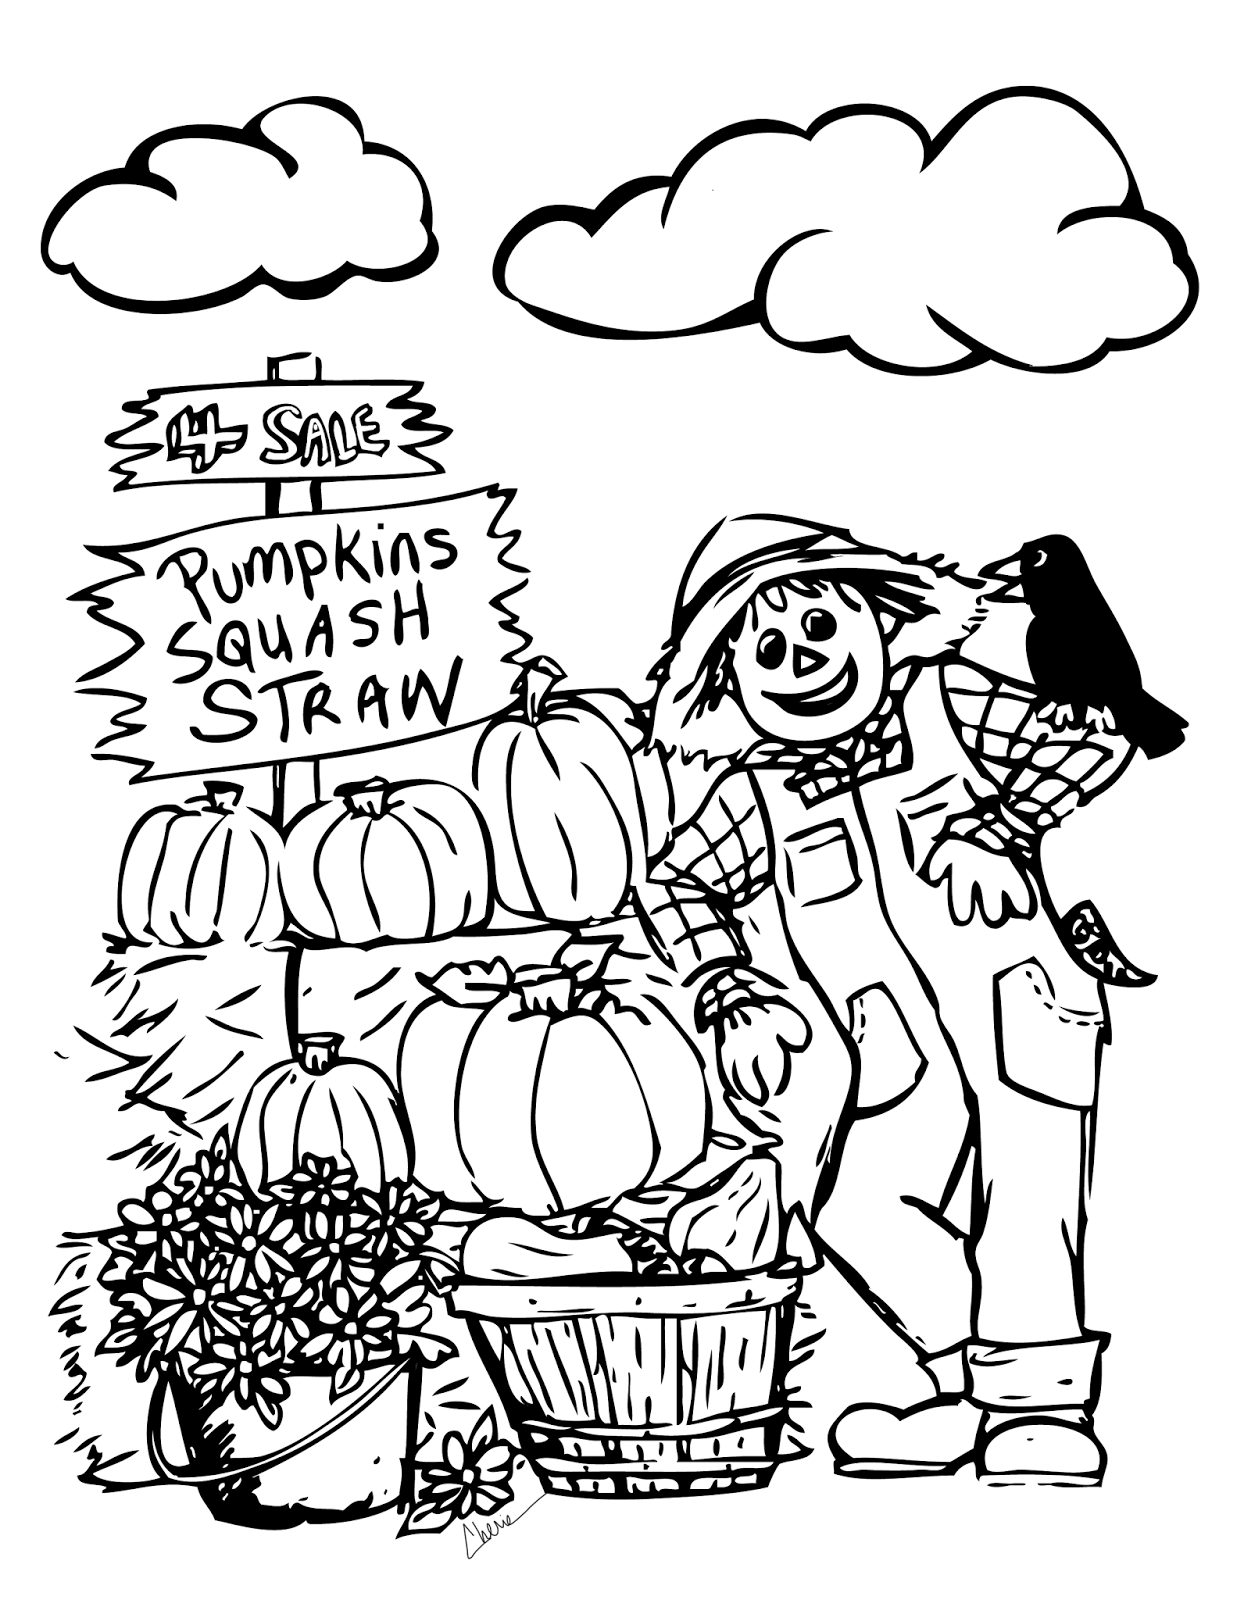 september coloring pages september coloring pages to download and print for free september pages coloring